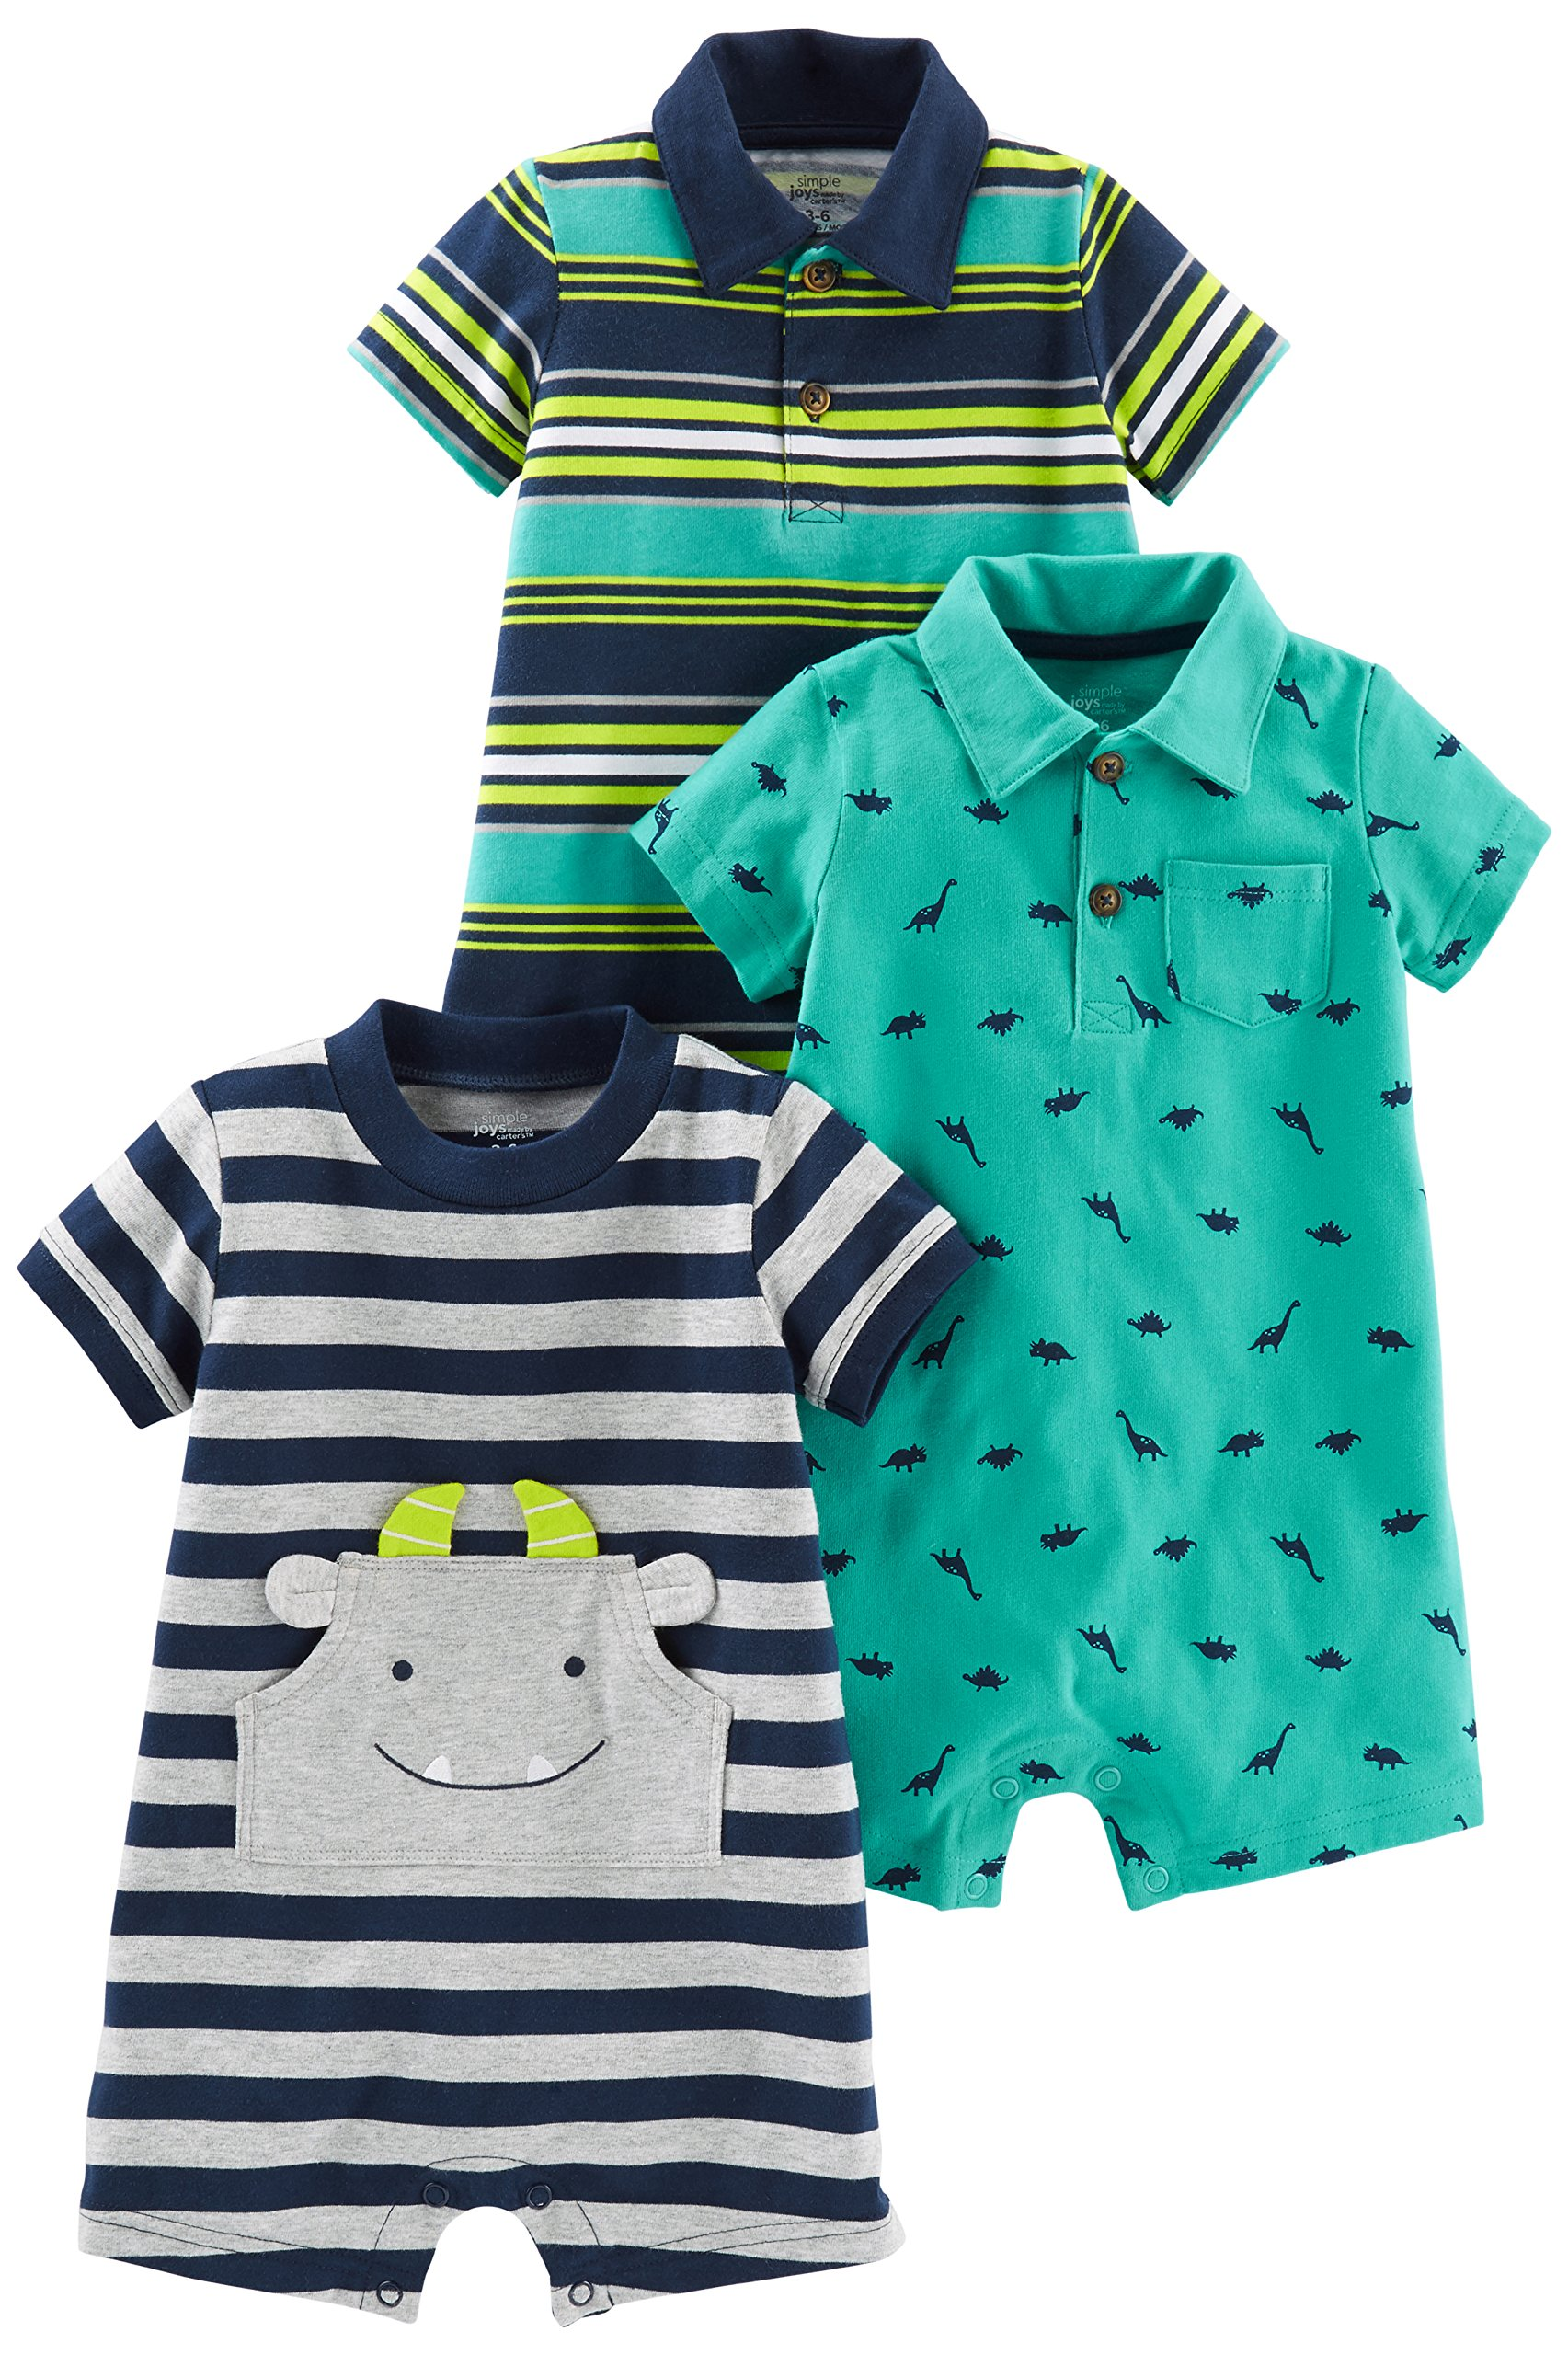 Simple Joys by Carters Baby Boys 3-Pack Rompers product image